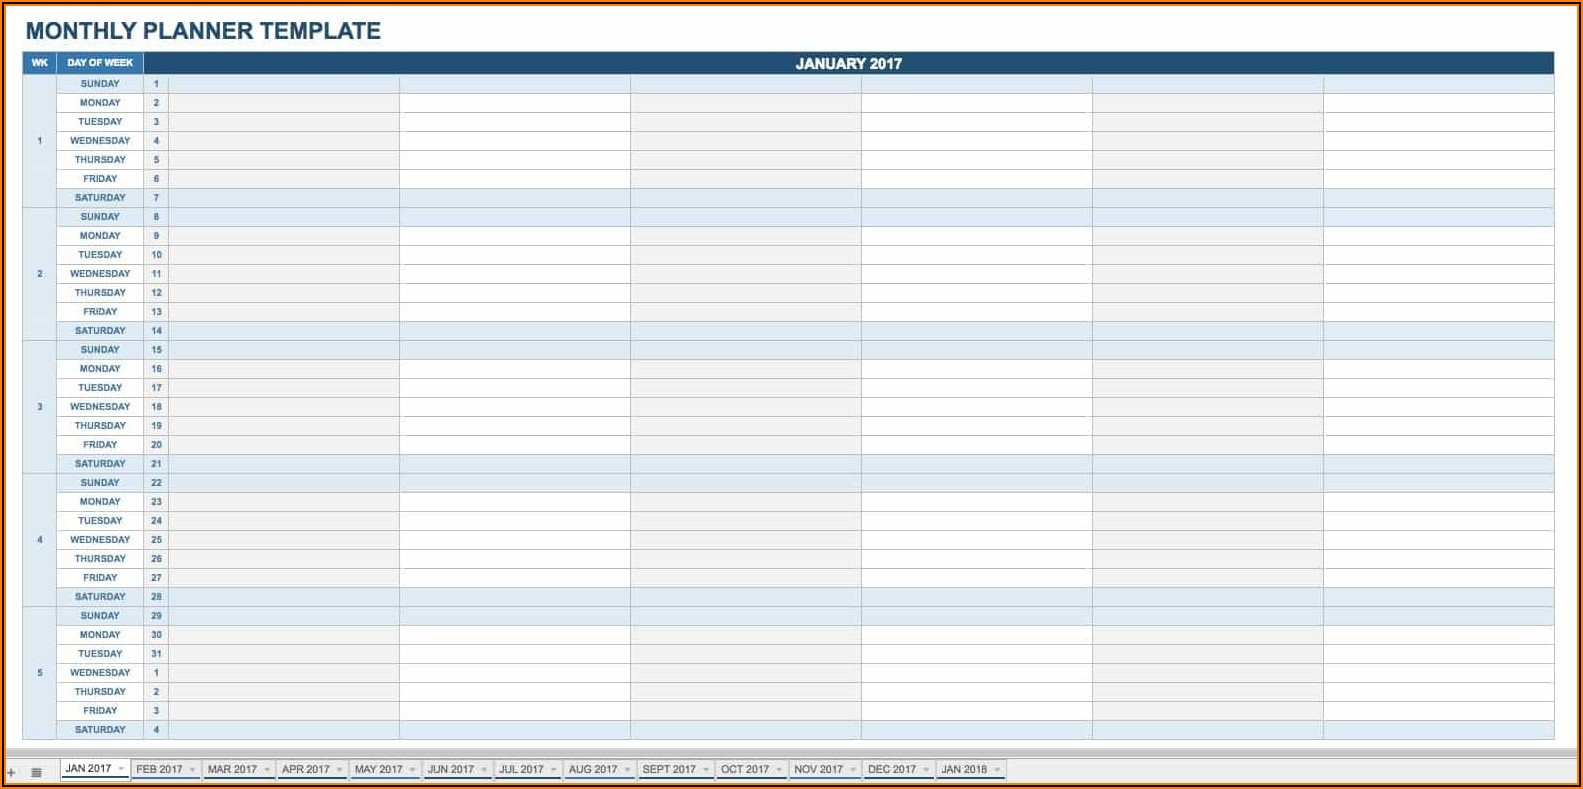 Daily Planner Google Sheets Template